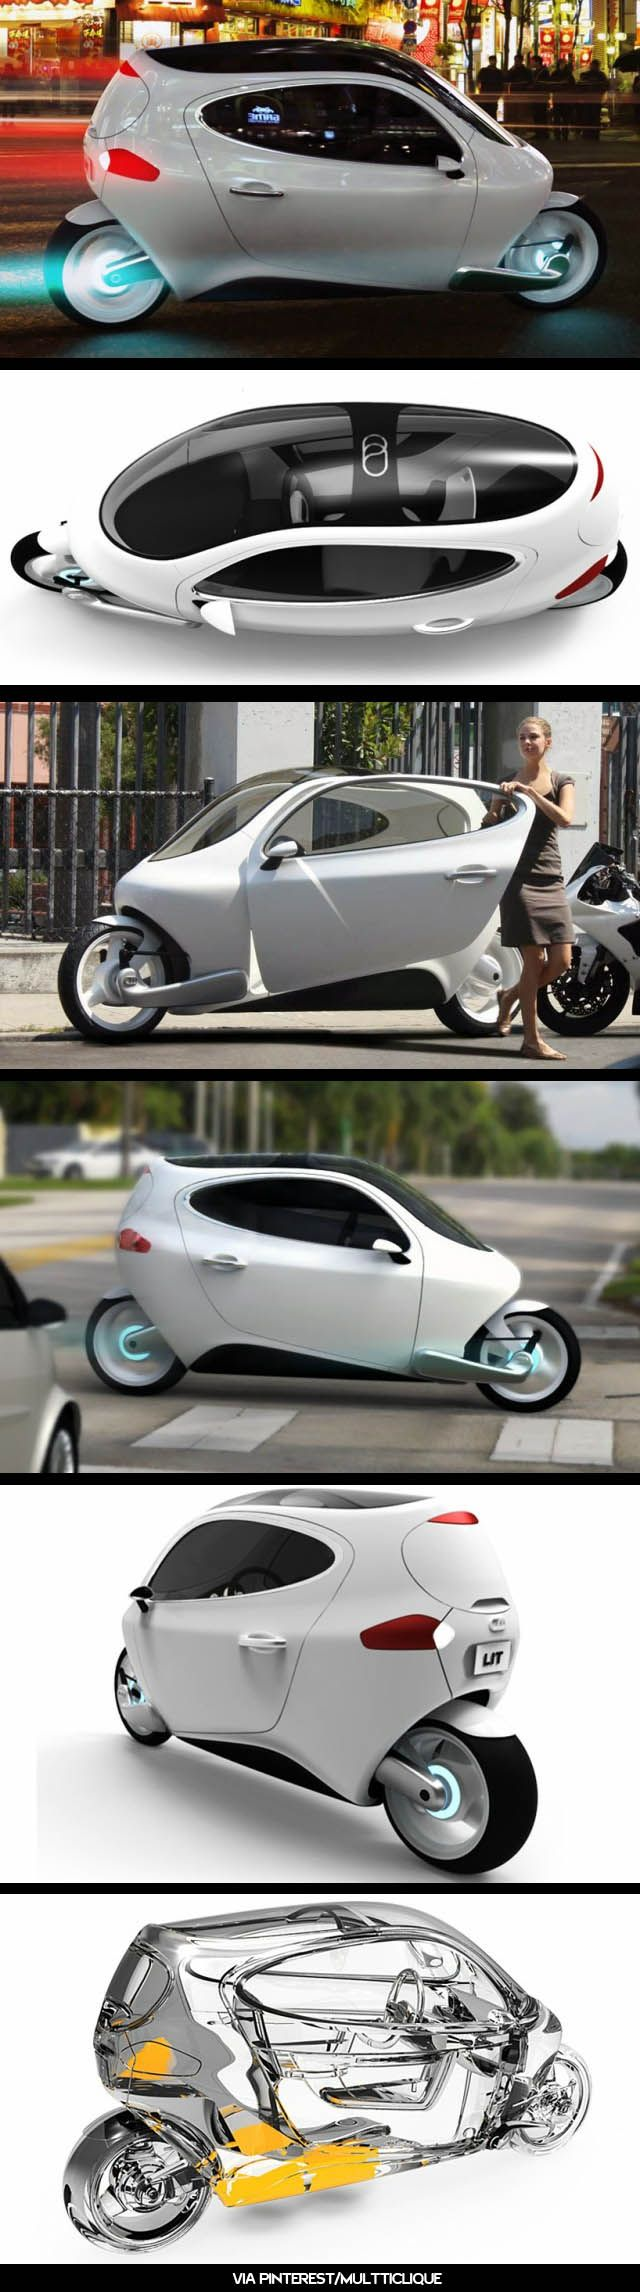 C1 by Lit Motors.  My new commuter for 2014.  Wondering if I should reserve one yet....